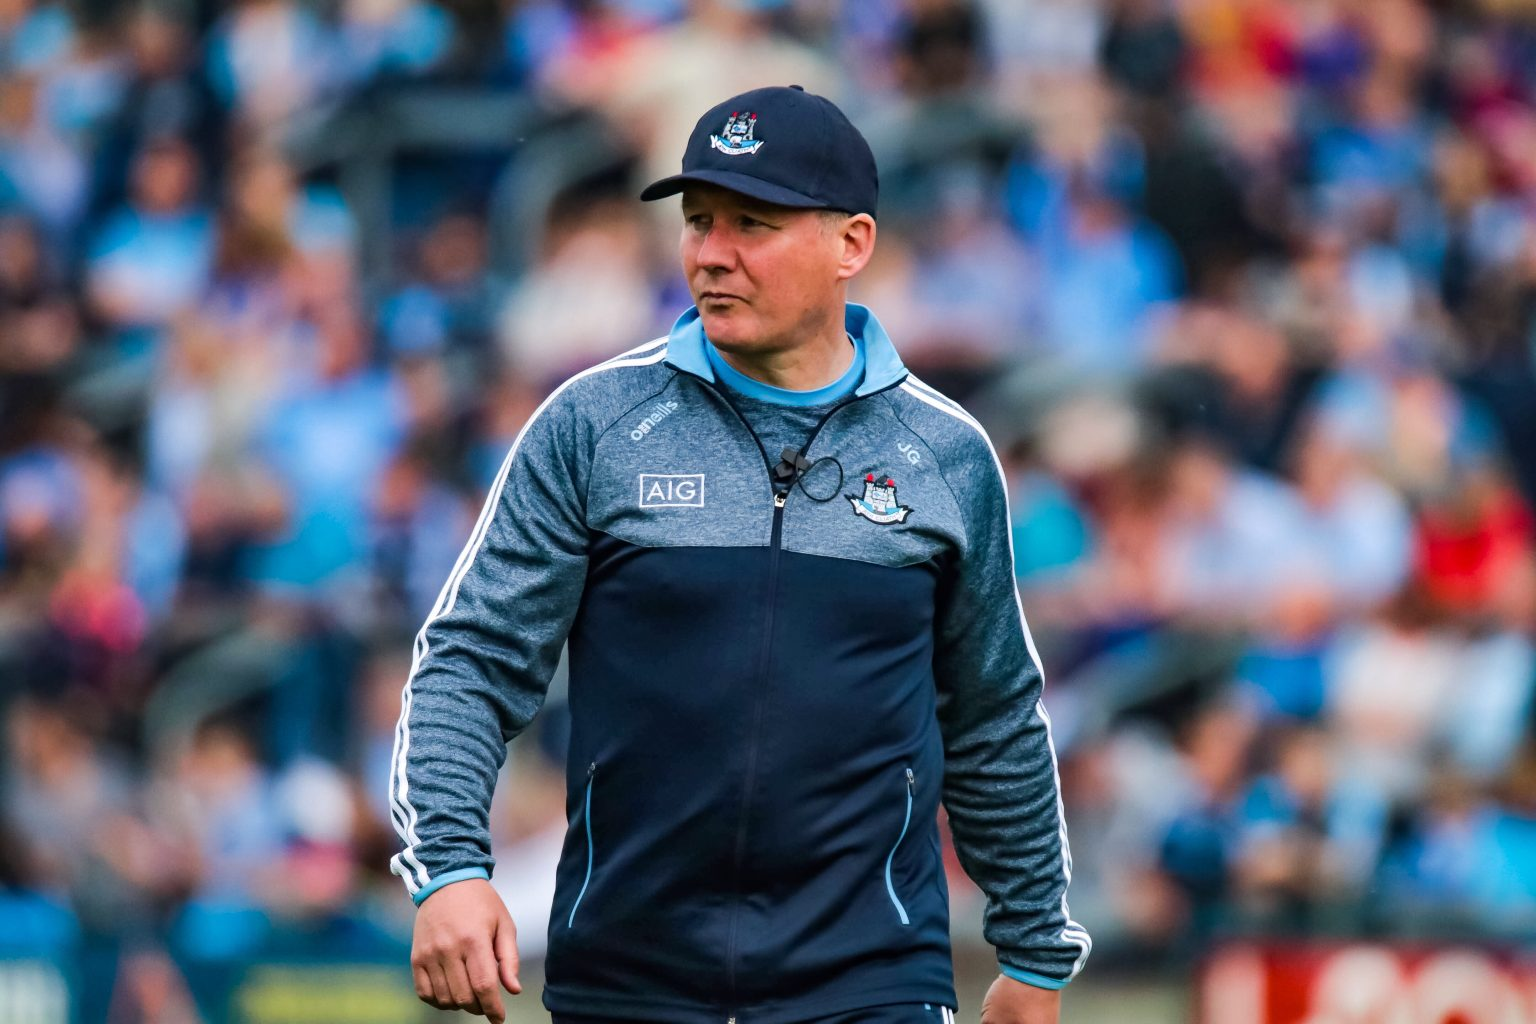 Dublin manager Jim Gavin in a navy and grey training top and navy cap is a tactical genius at getting his player match ups spot on